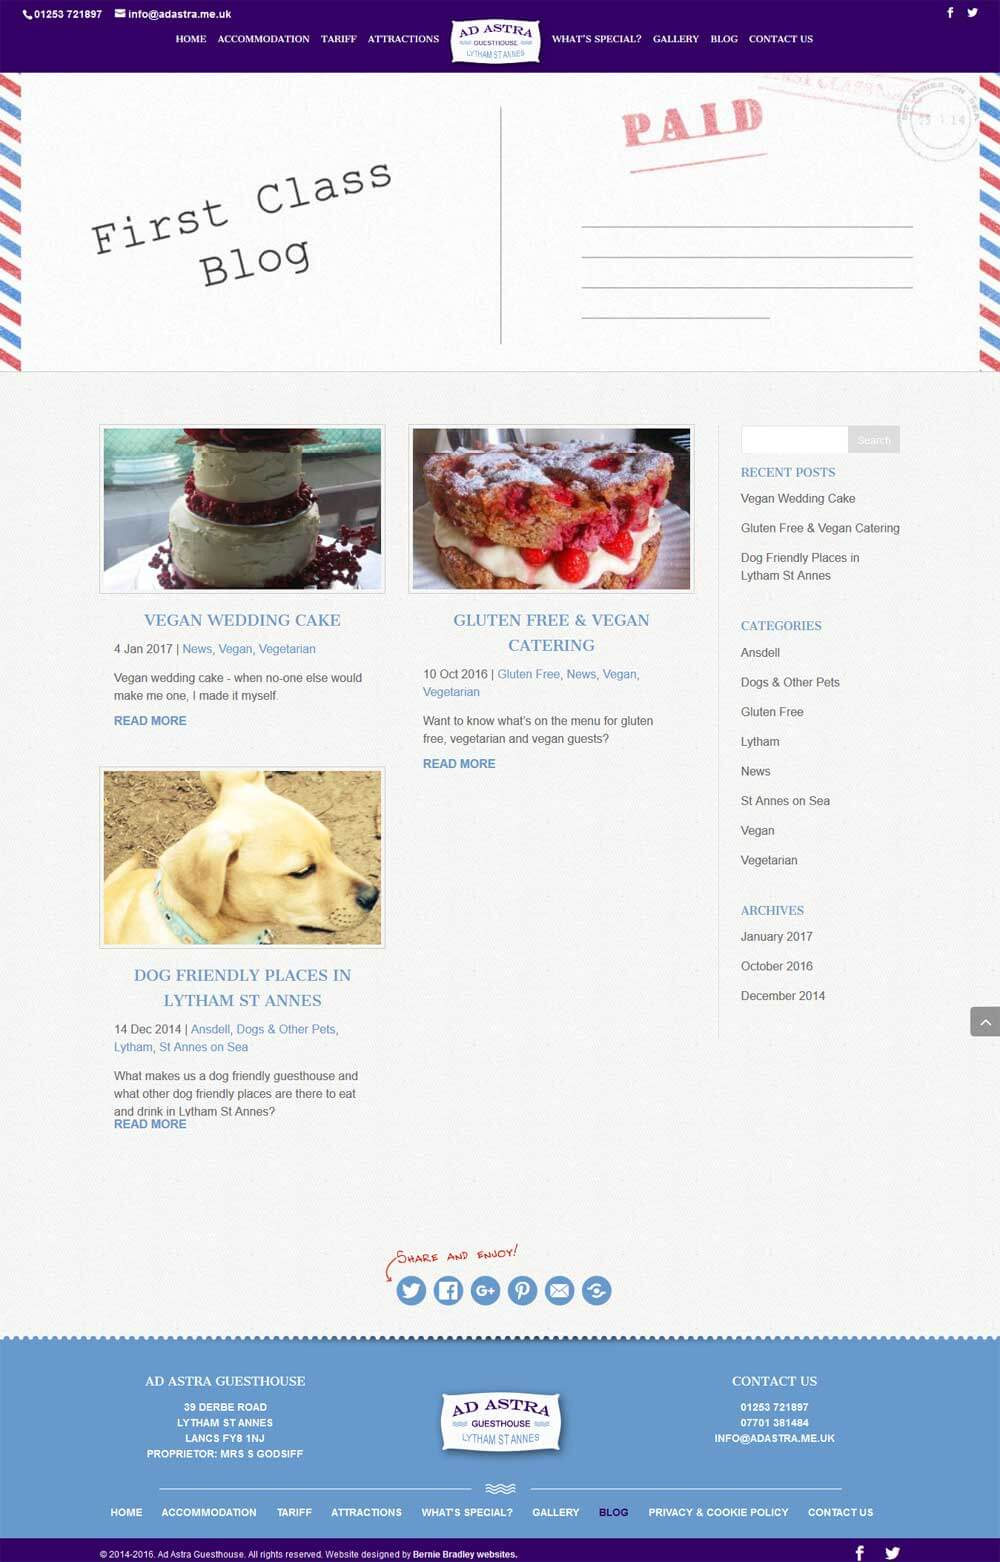 Blog listing page showing recent posts, blog categories and an archive of articles